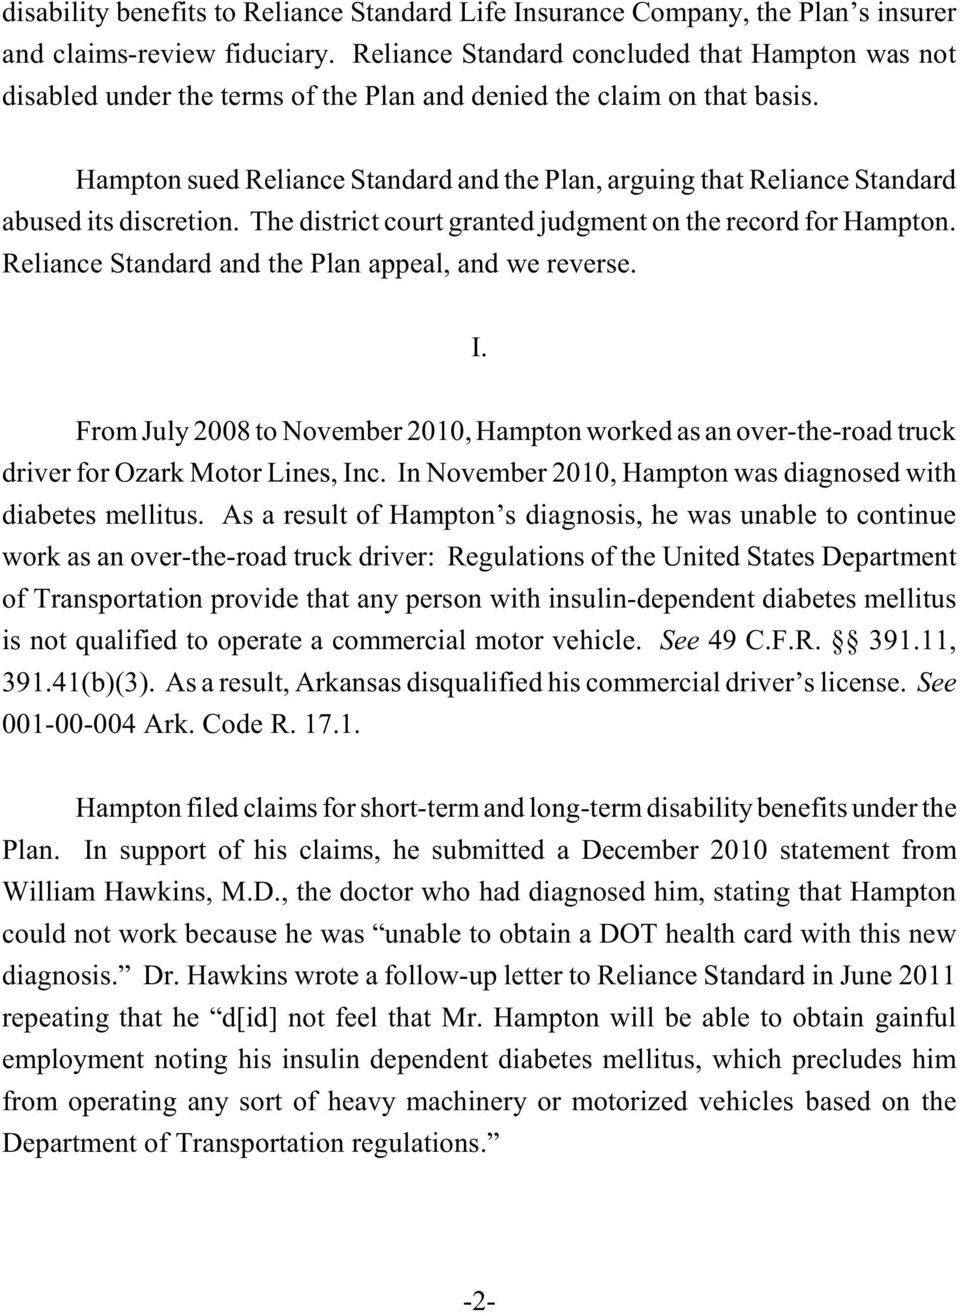 Hampton sued Reliance Standard and the Plan, arguing that Reliance Standard abused its discretion. The district court granted judgment on the record for Hampton.